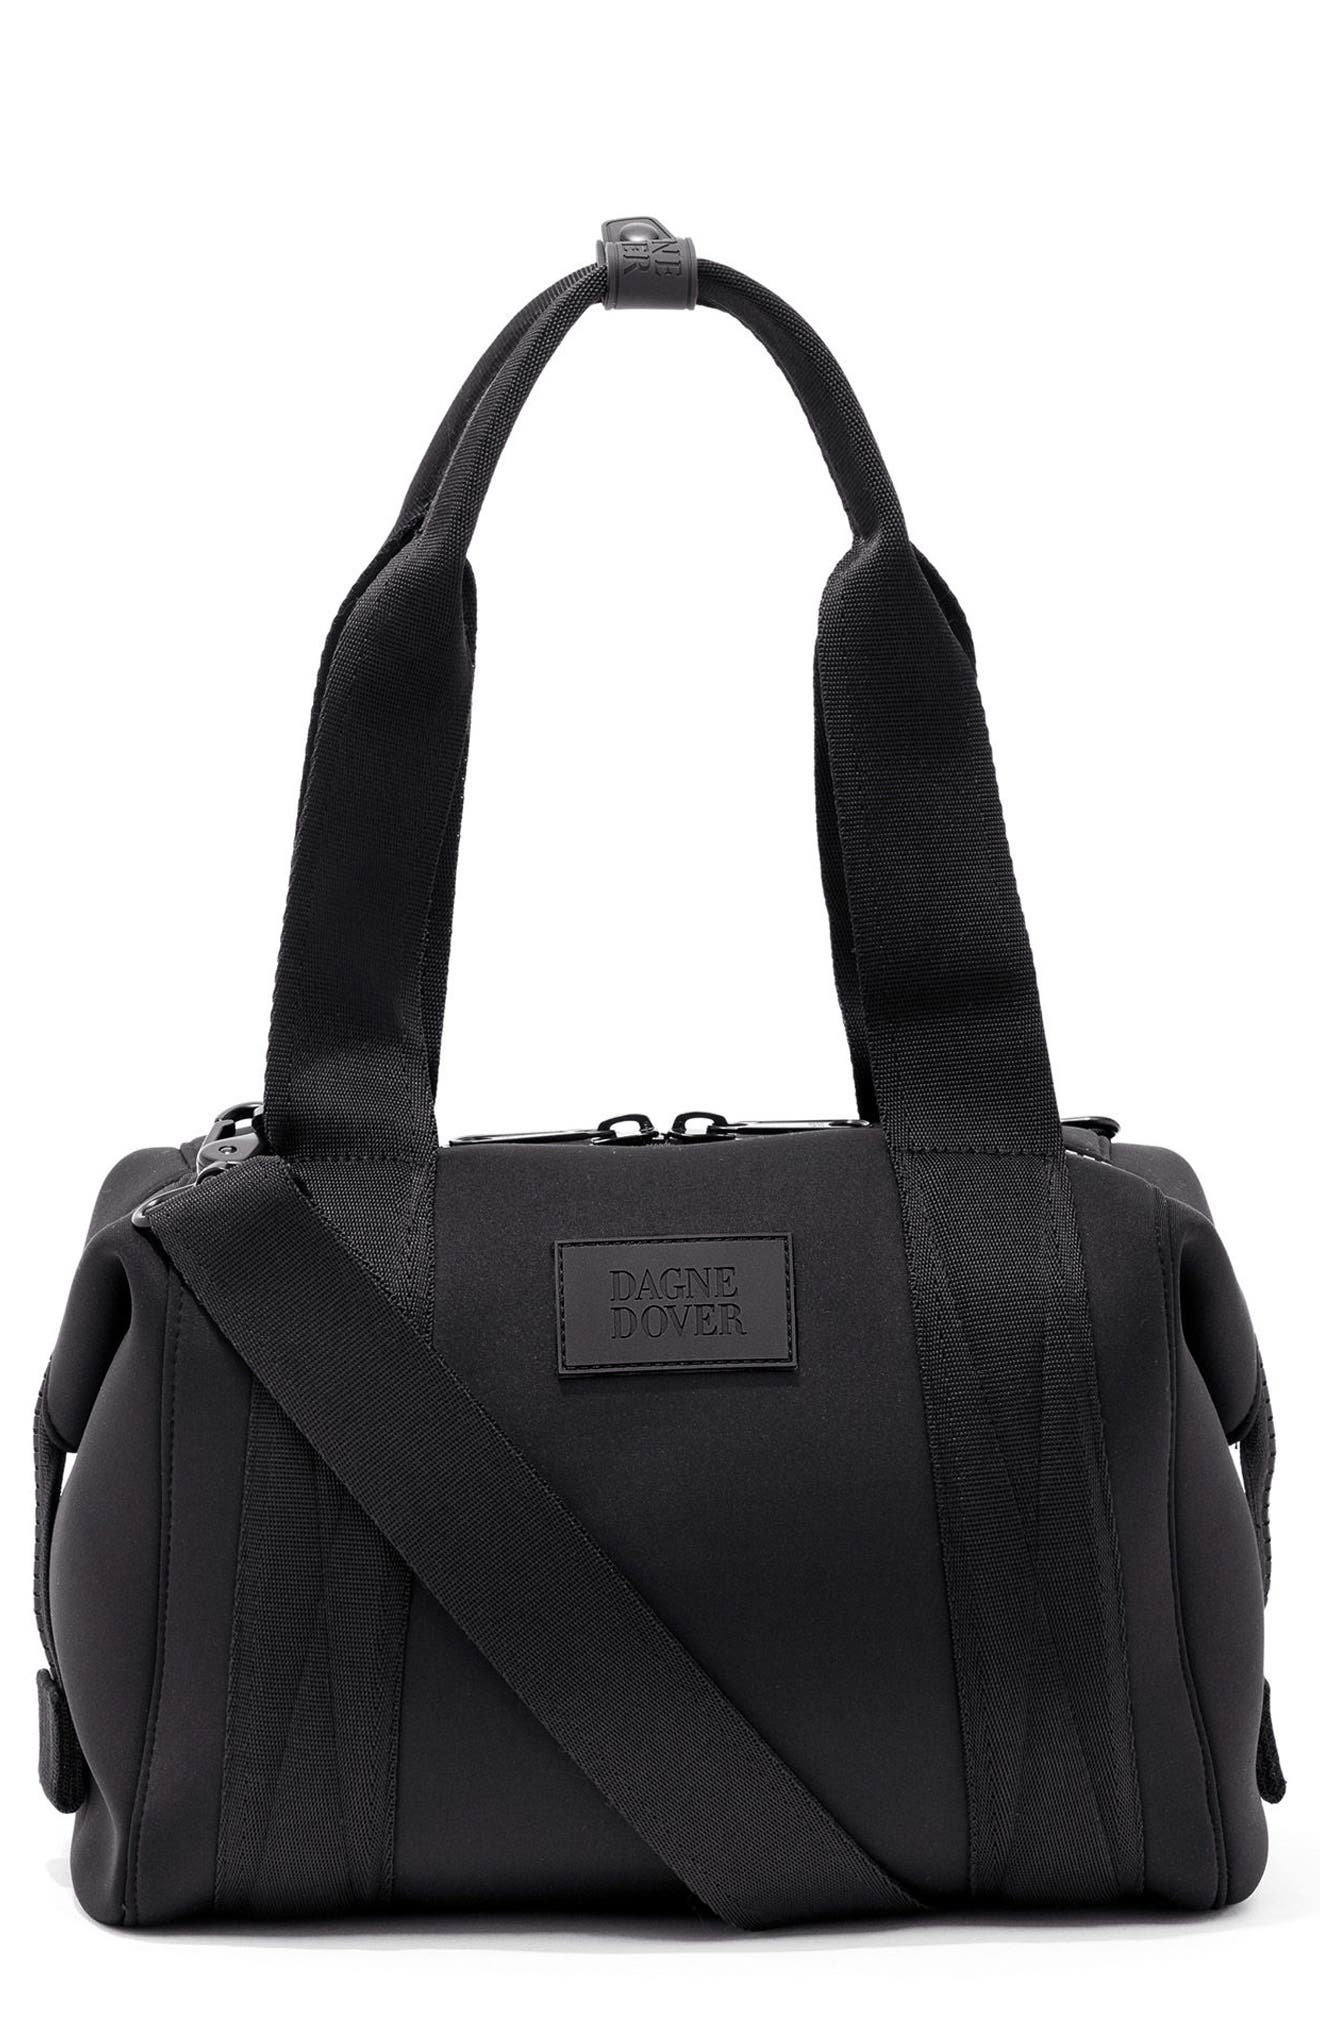 365 Small Landon Carryall Duffel Bag,                         Main,                         color, Onyx